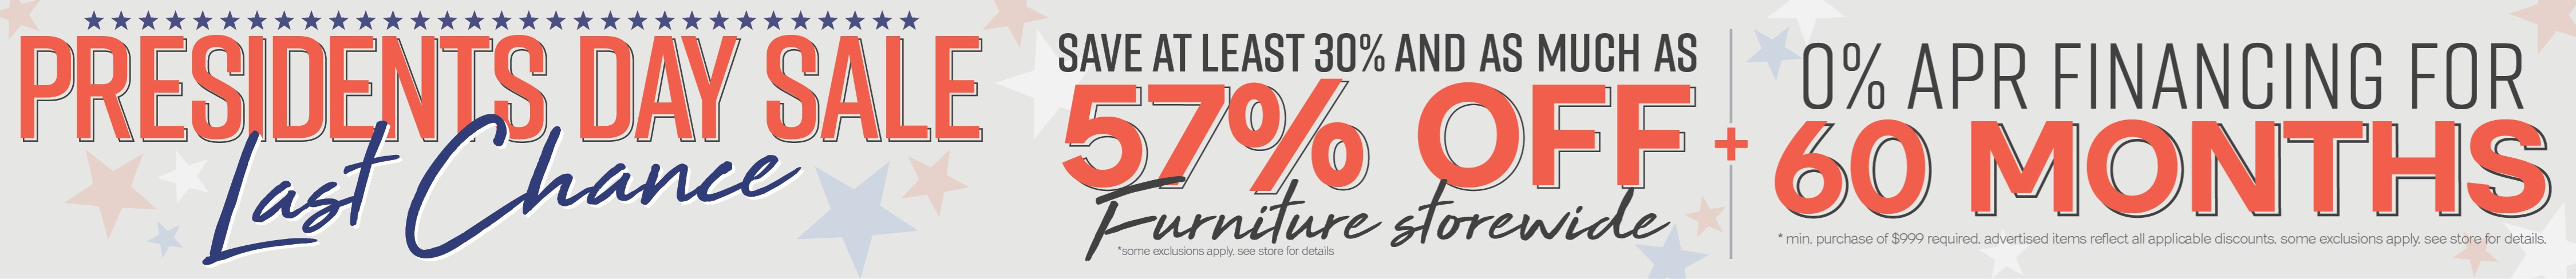 Furniture & ApplianceMart Presidents Last Chance